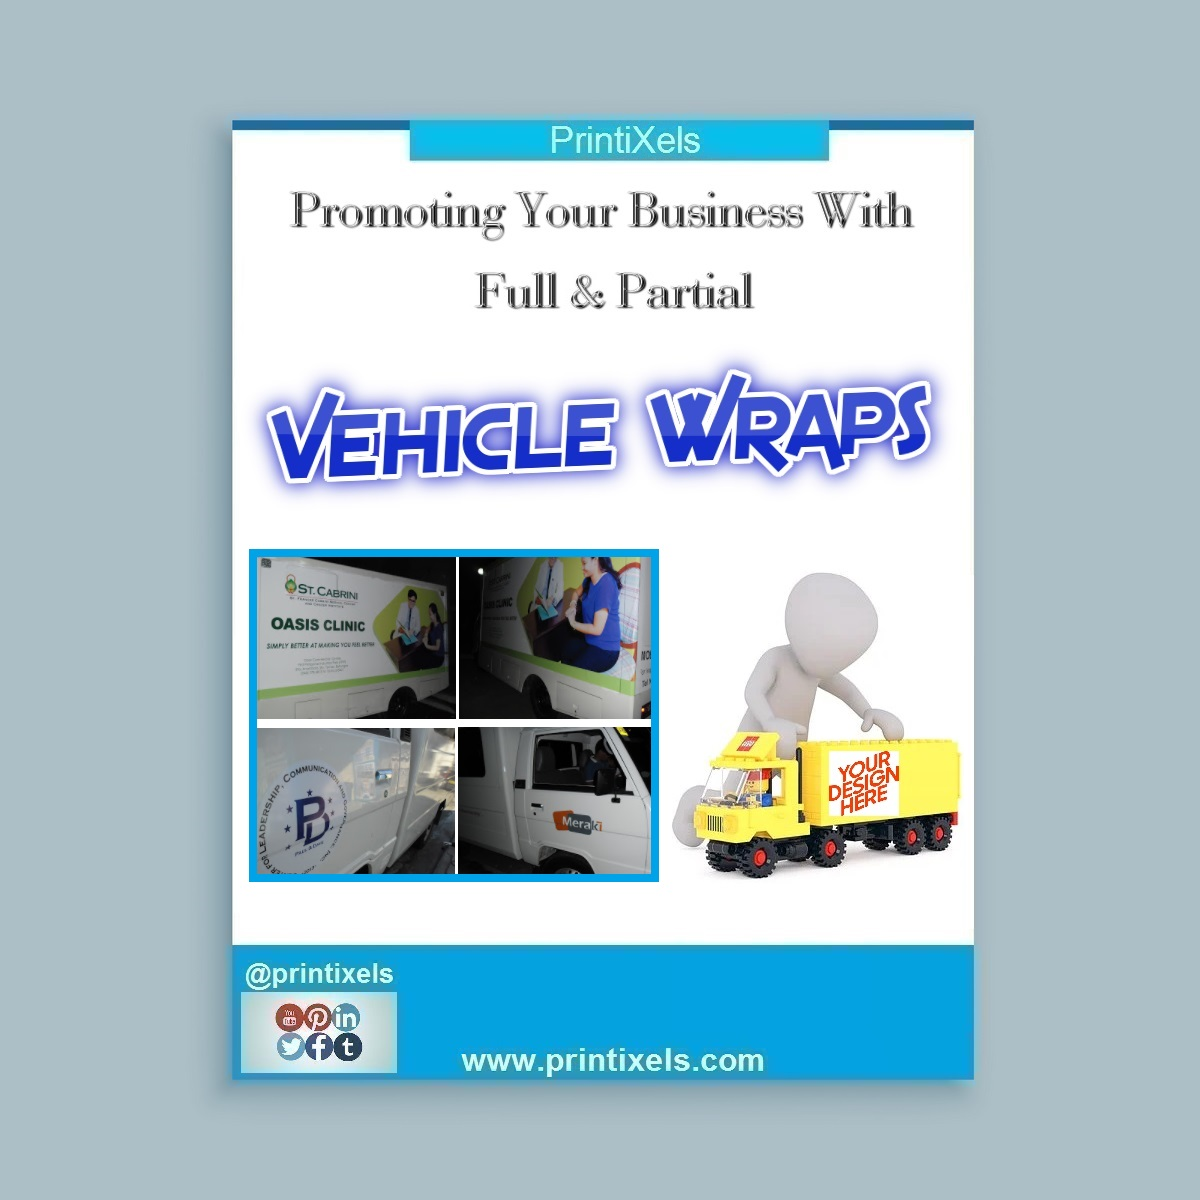 Promoting Your Business With Full & Partial Vehicle Wraps